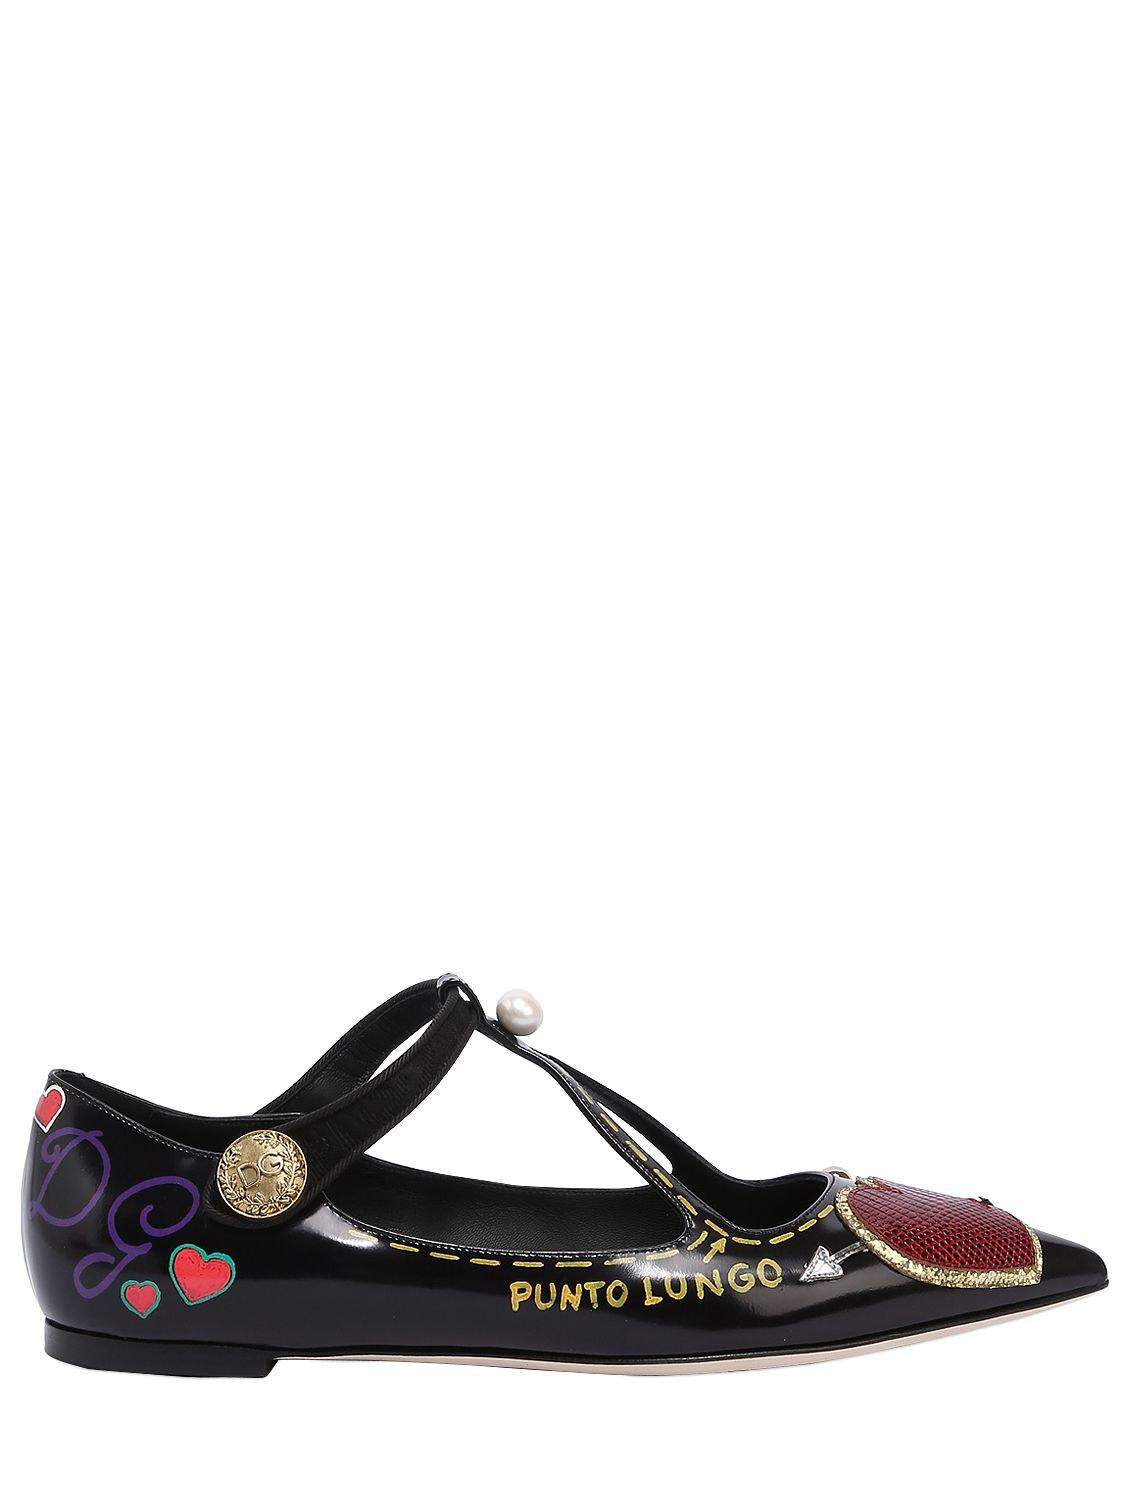 Dolce & Gabbana Pointed-Toe Multi-Strap Ballet Flats free shipping original new sale online wW4i6